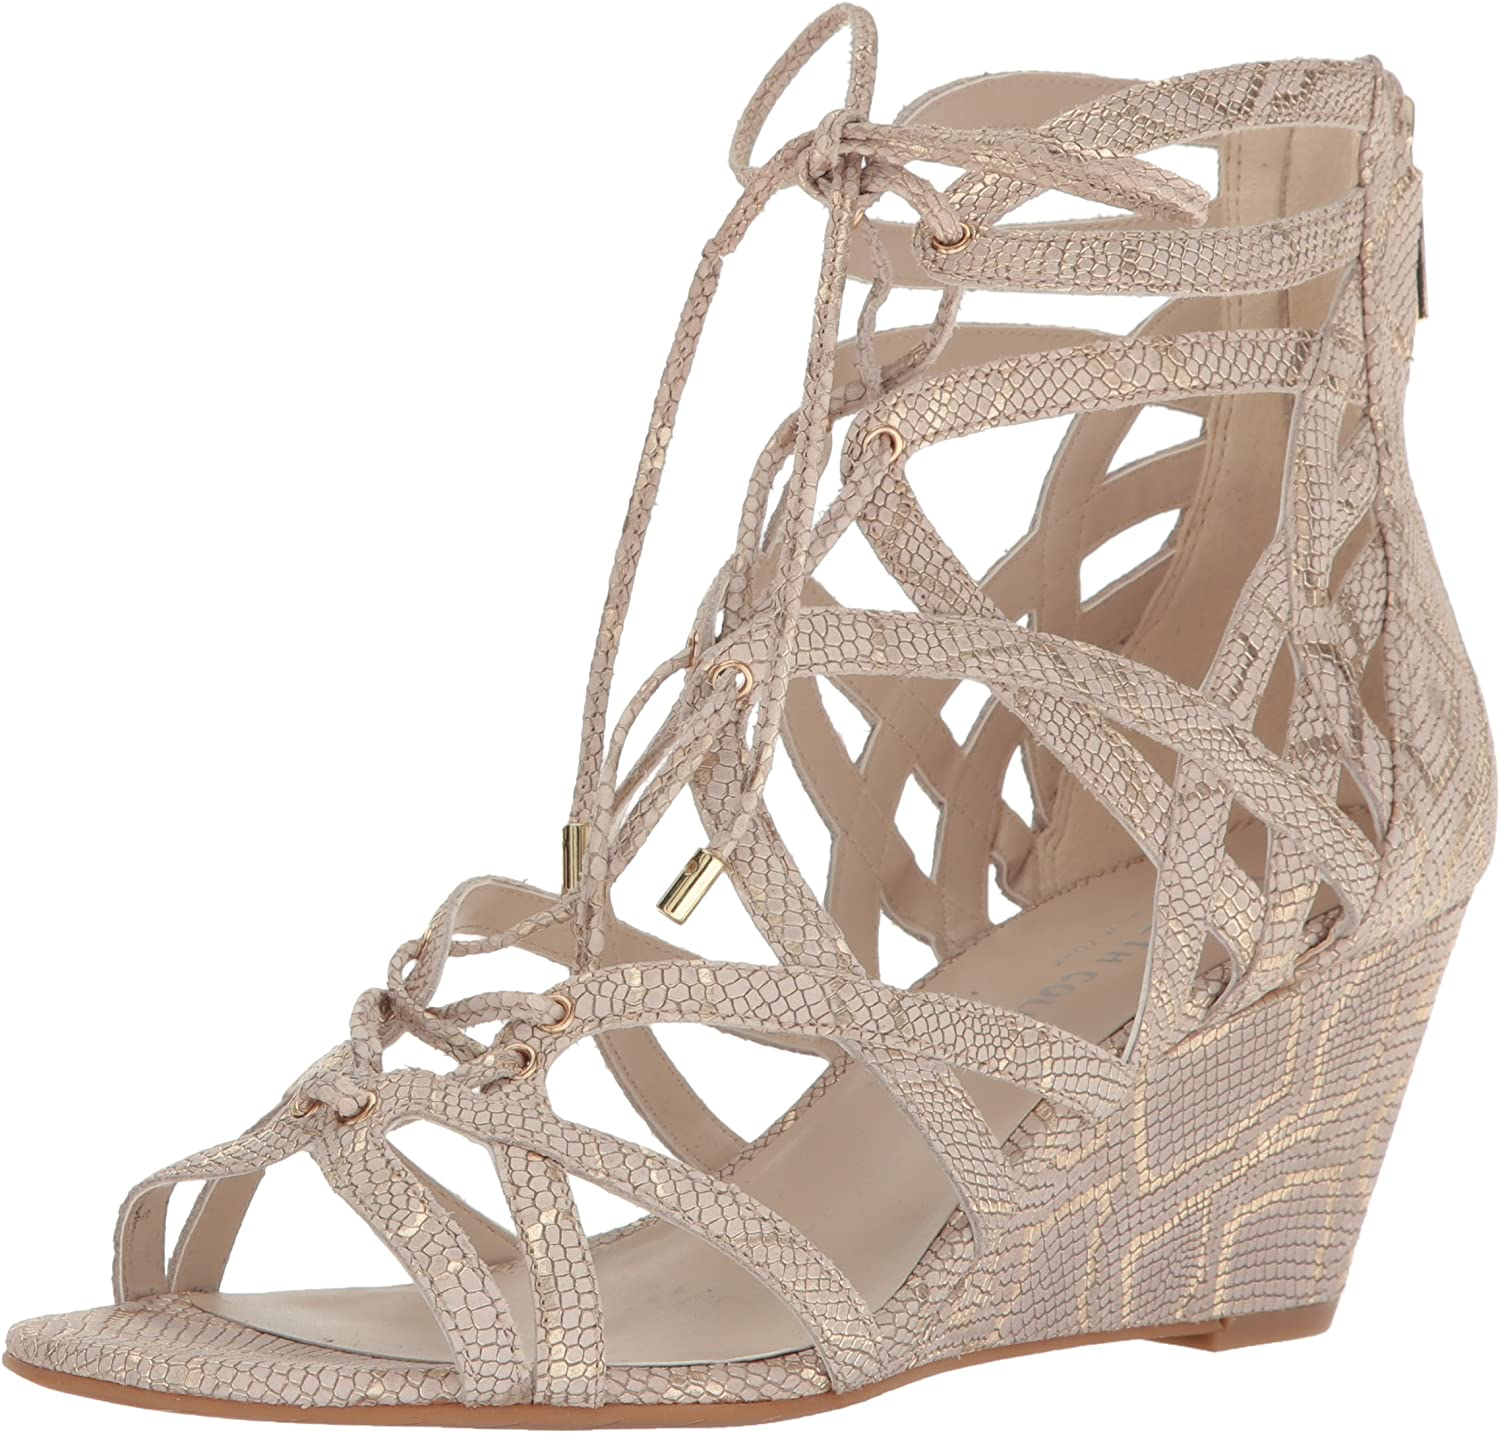 Kenneth Cole New York Womens Dylan Wedge Sandal